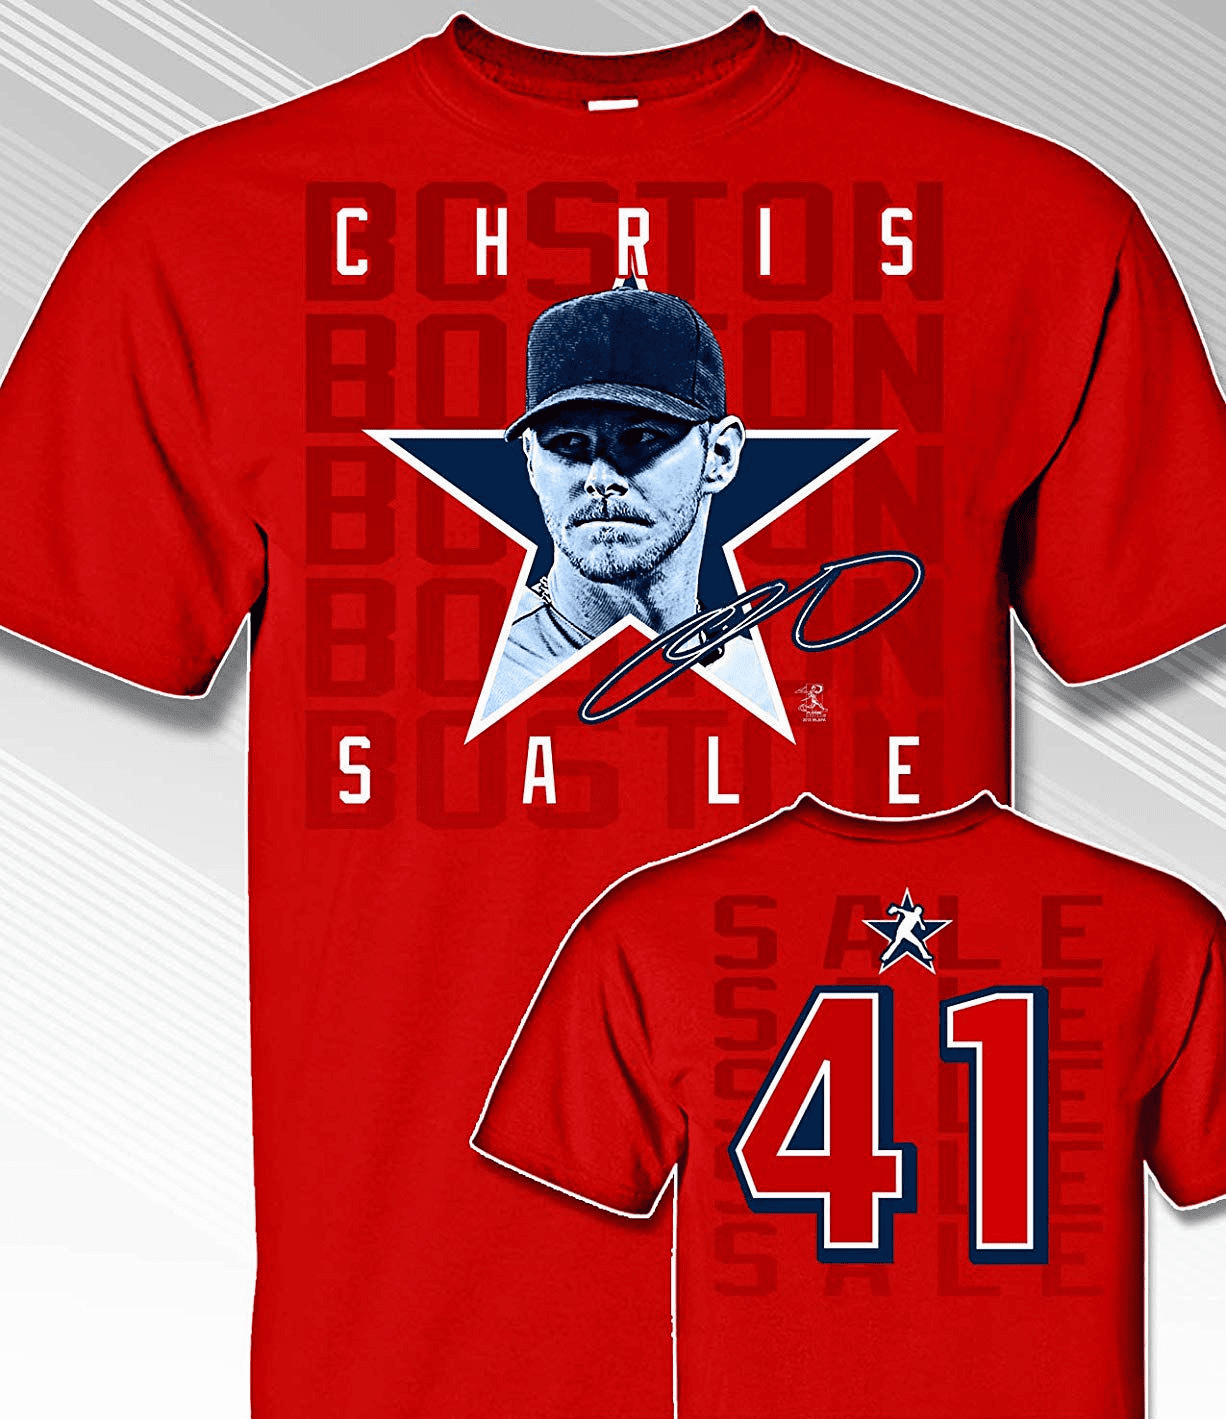 Chris Sale Star Power T-Shirt<br>Short or Long Sleeve<br>Youth Med to Adult 4X